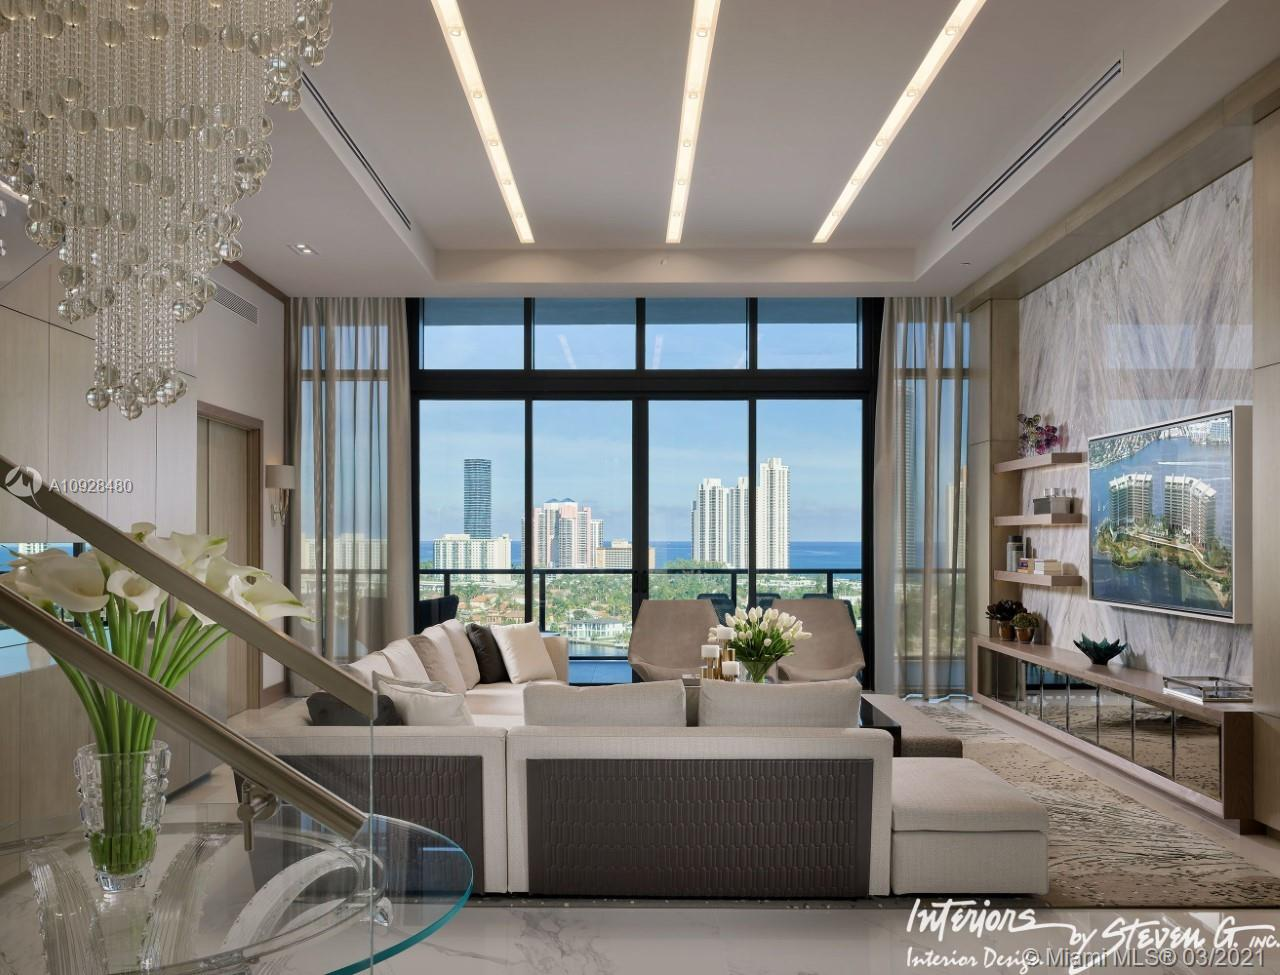 Beautiful PH´s in the most exclusive islands in Aventura. We have the option to join the two Penthouses 1506 and 1507 and make a unique luxury apartament. Steven G made a built up proposal in which the additional cost will be the Buyers responsability.